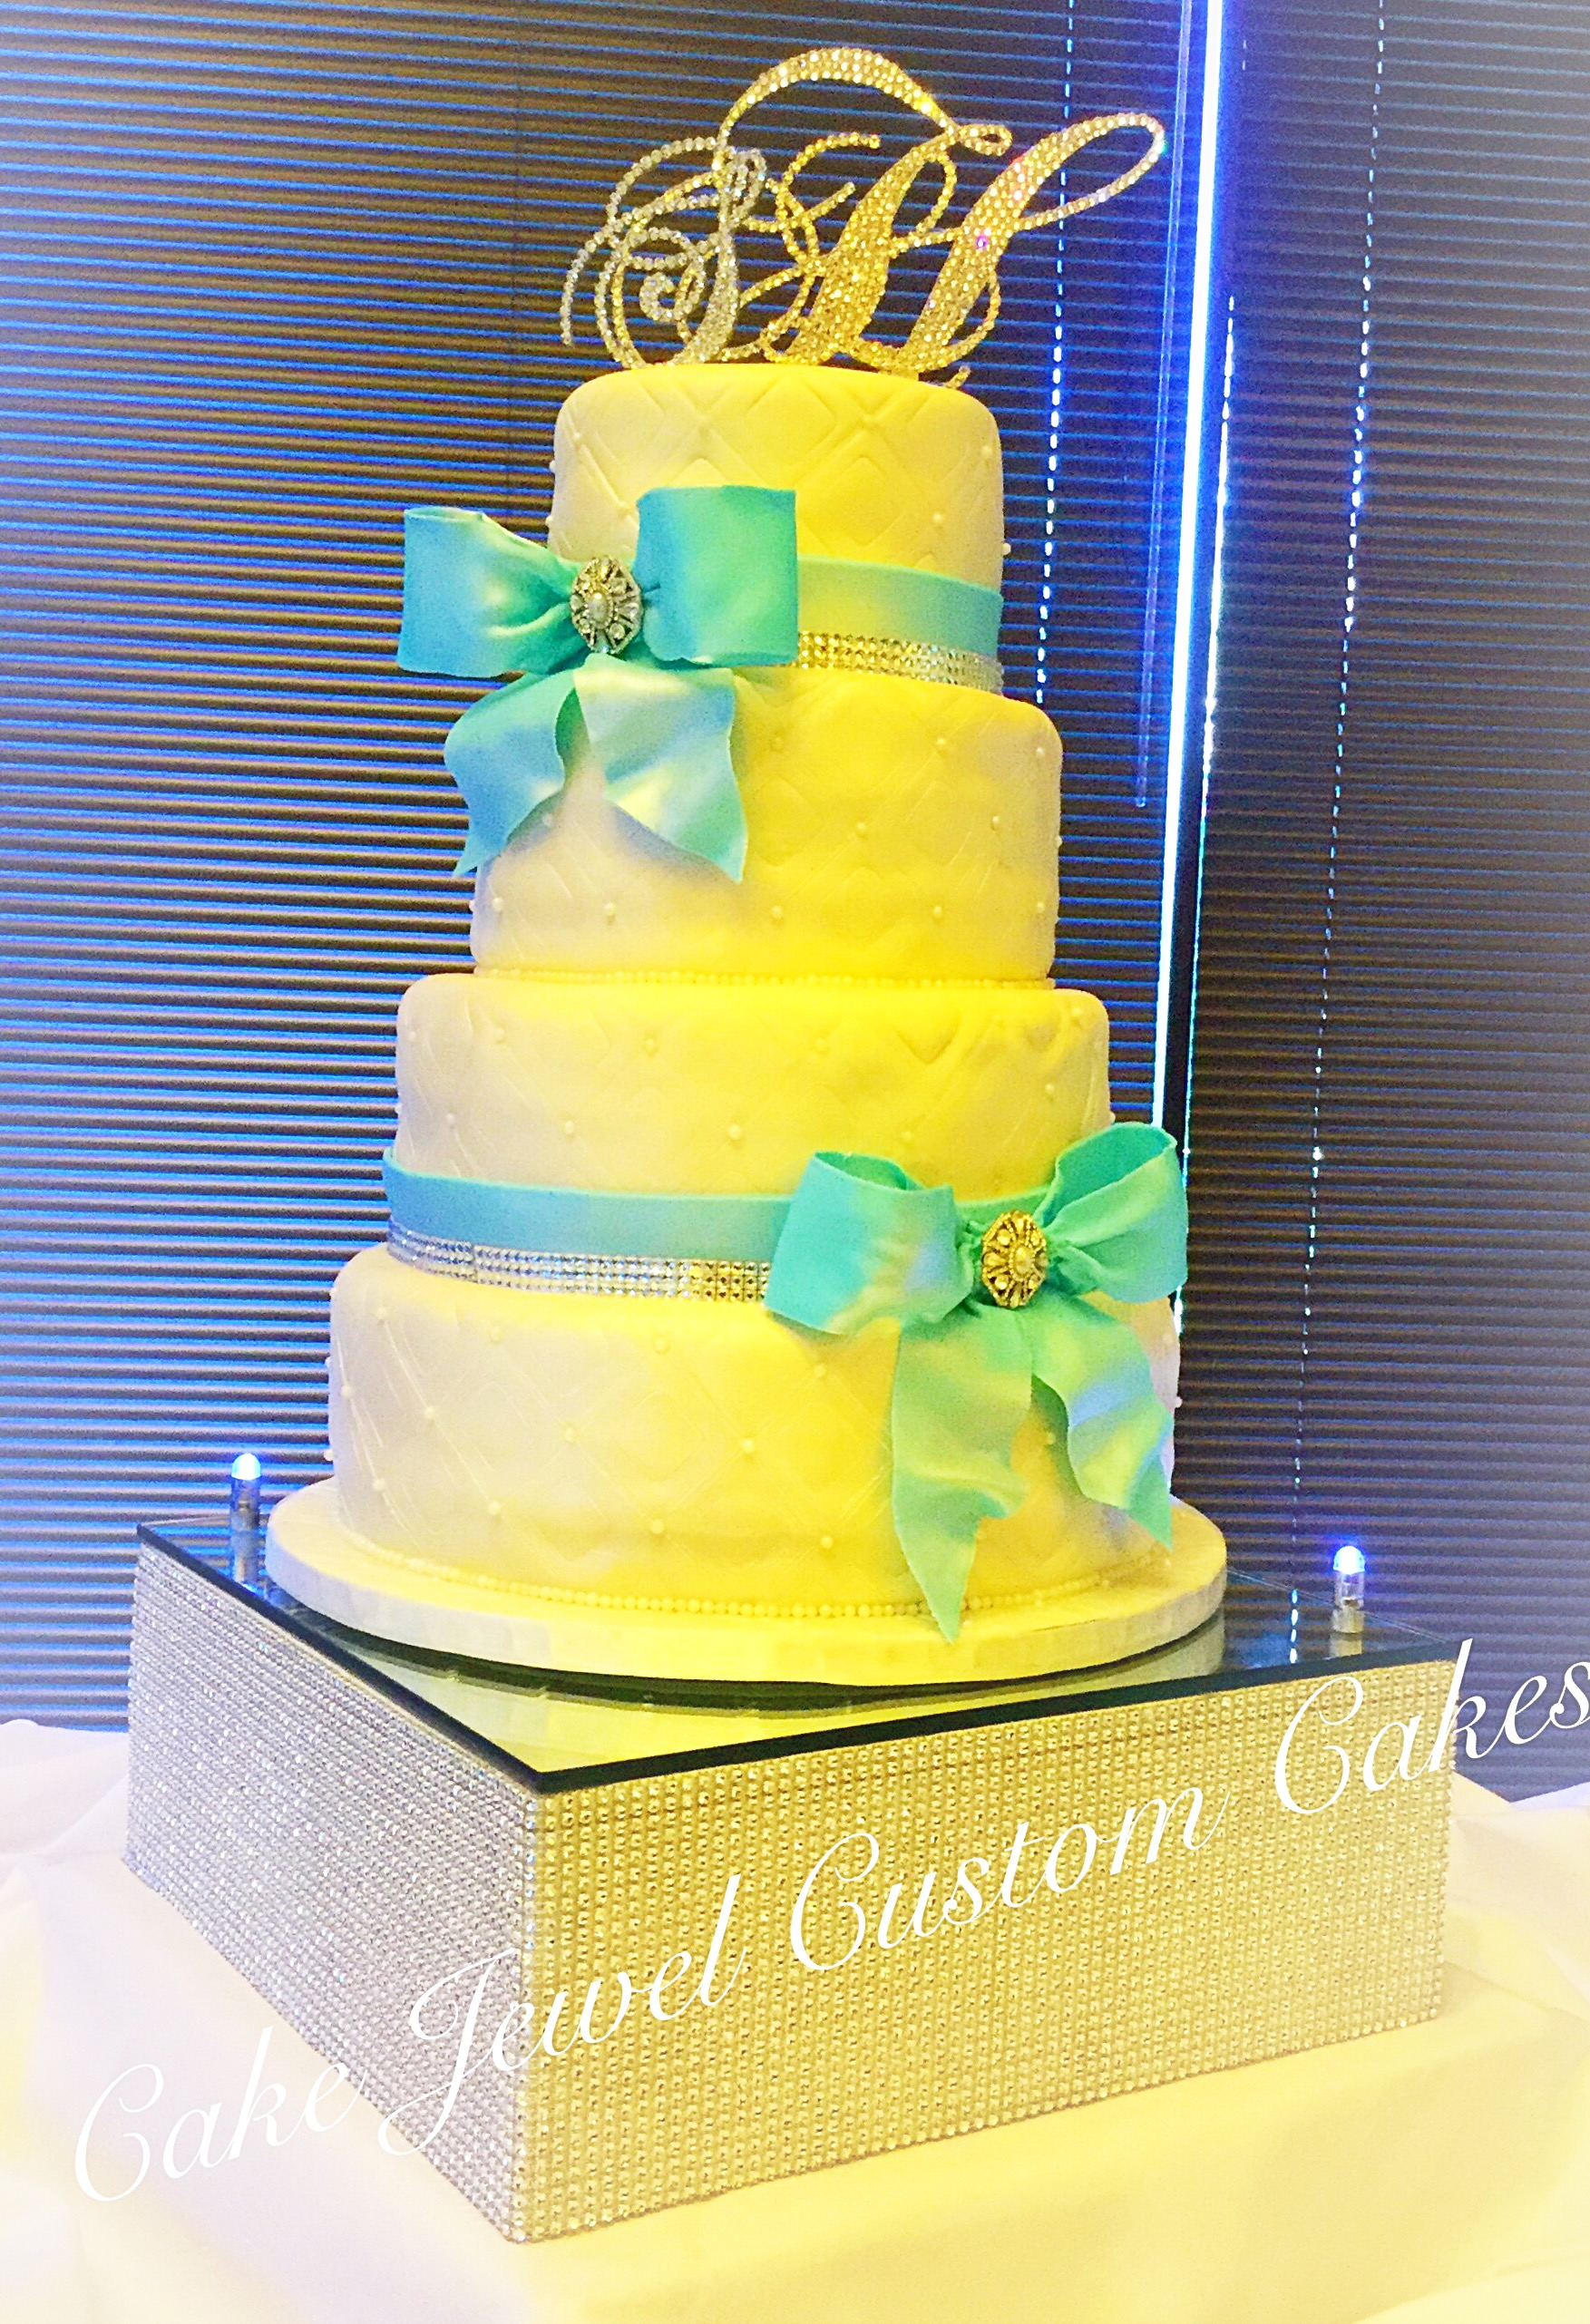 White & Turquiose Wedding cake